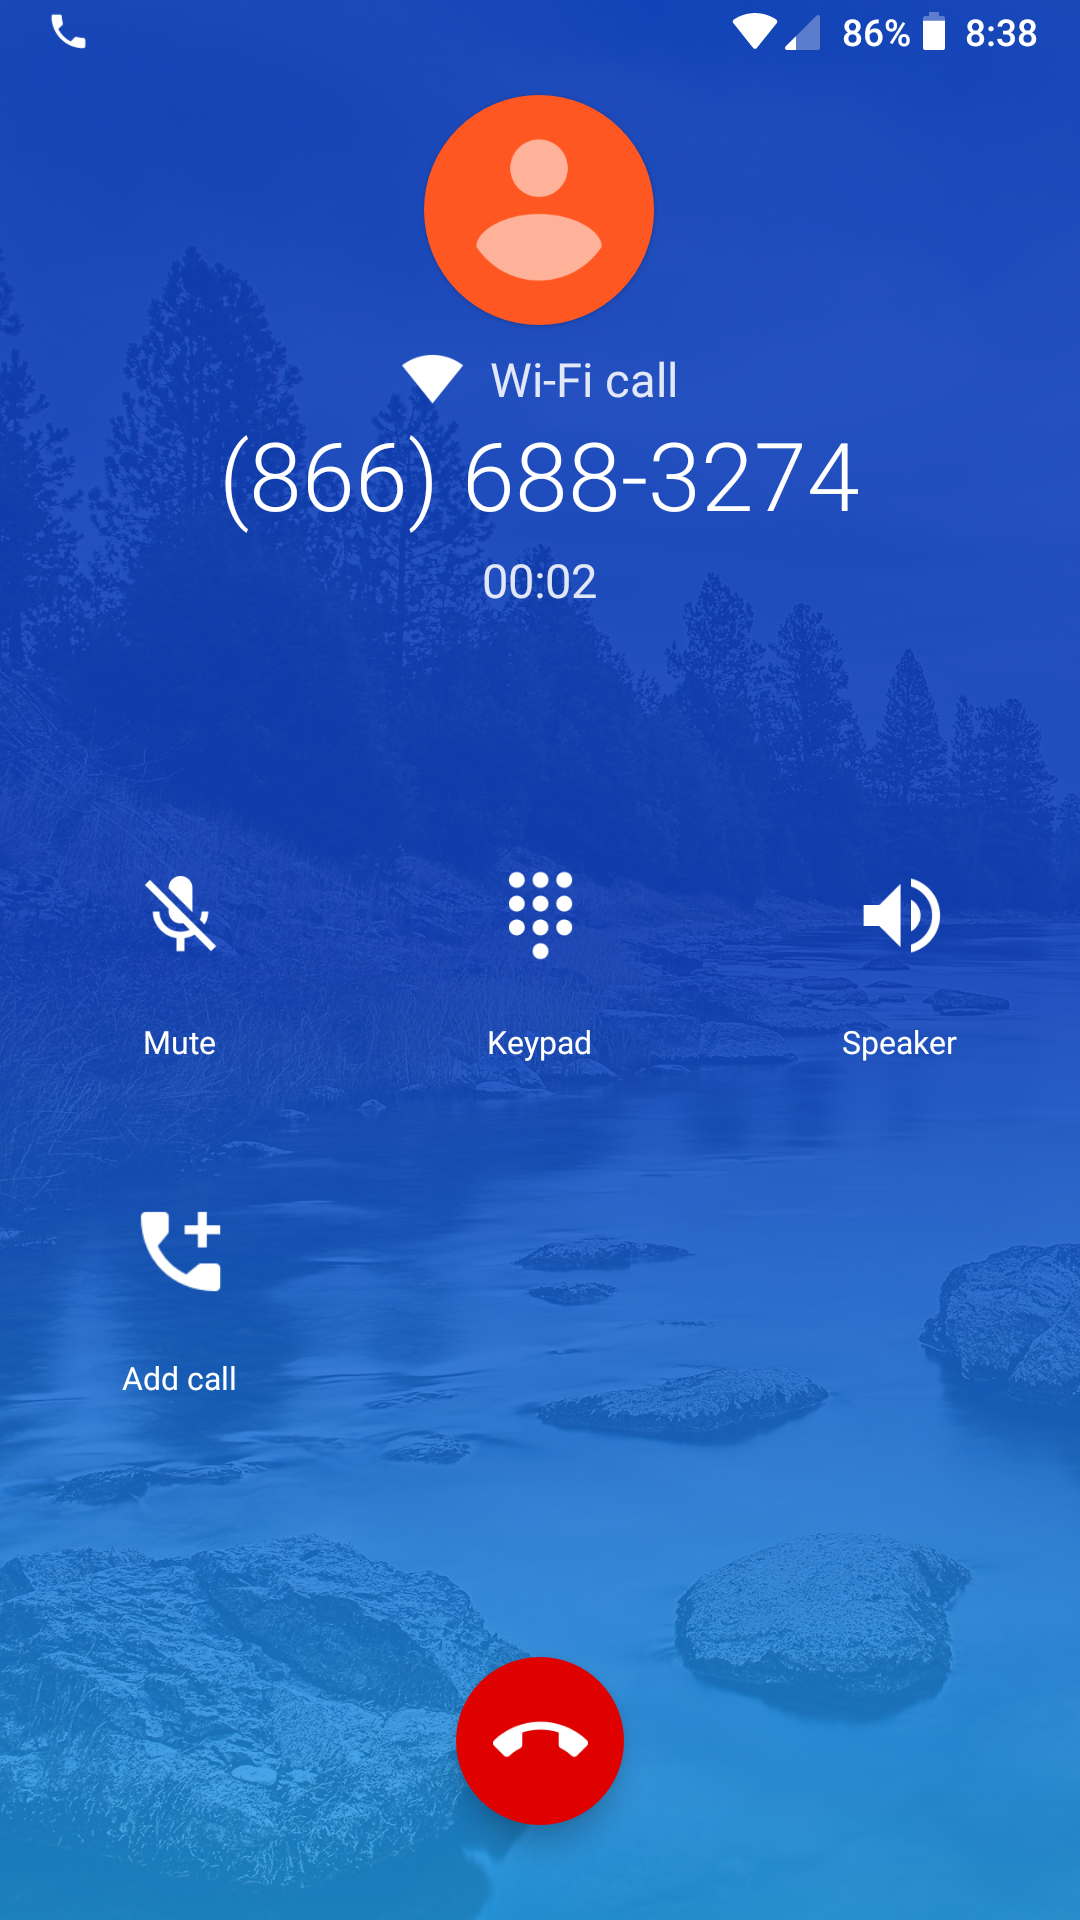 WiFi calling issue Pixel 2 (unlocked from Google) on Verizon